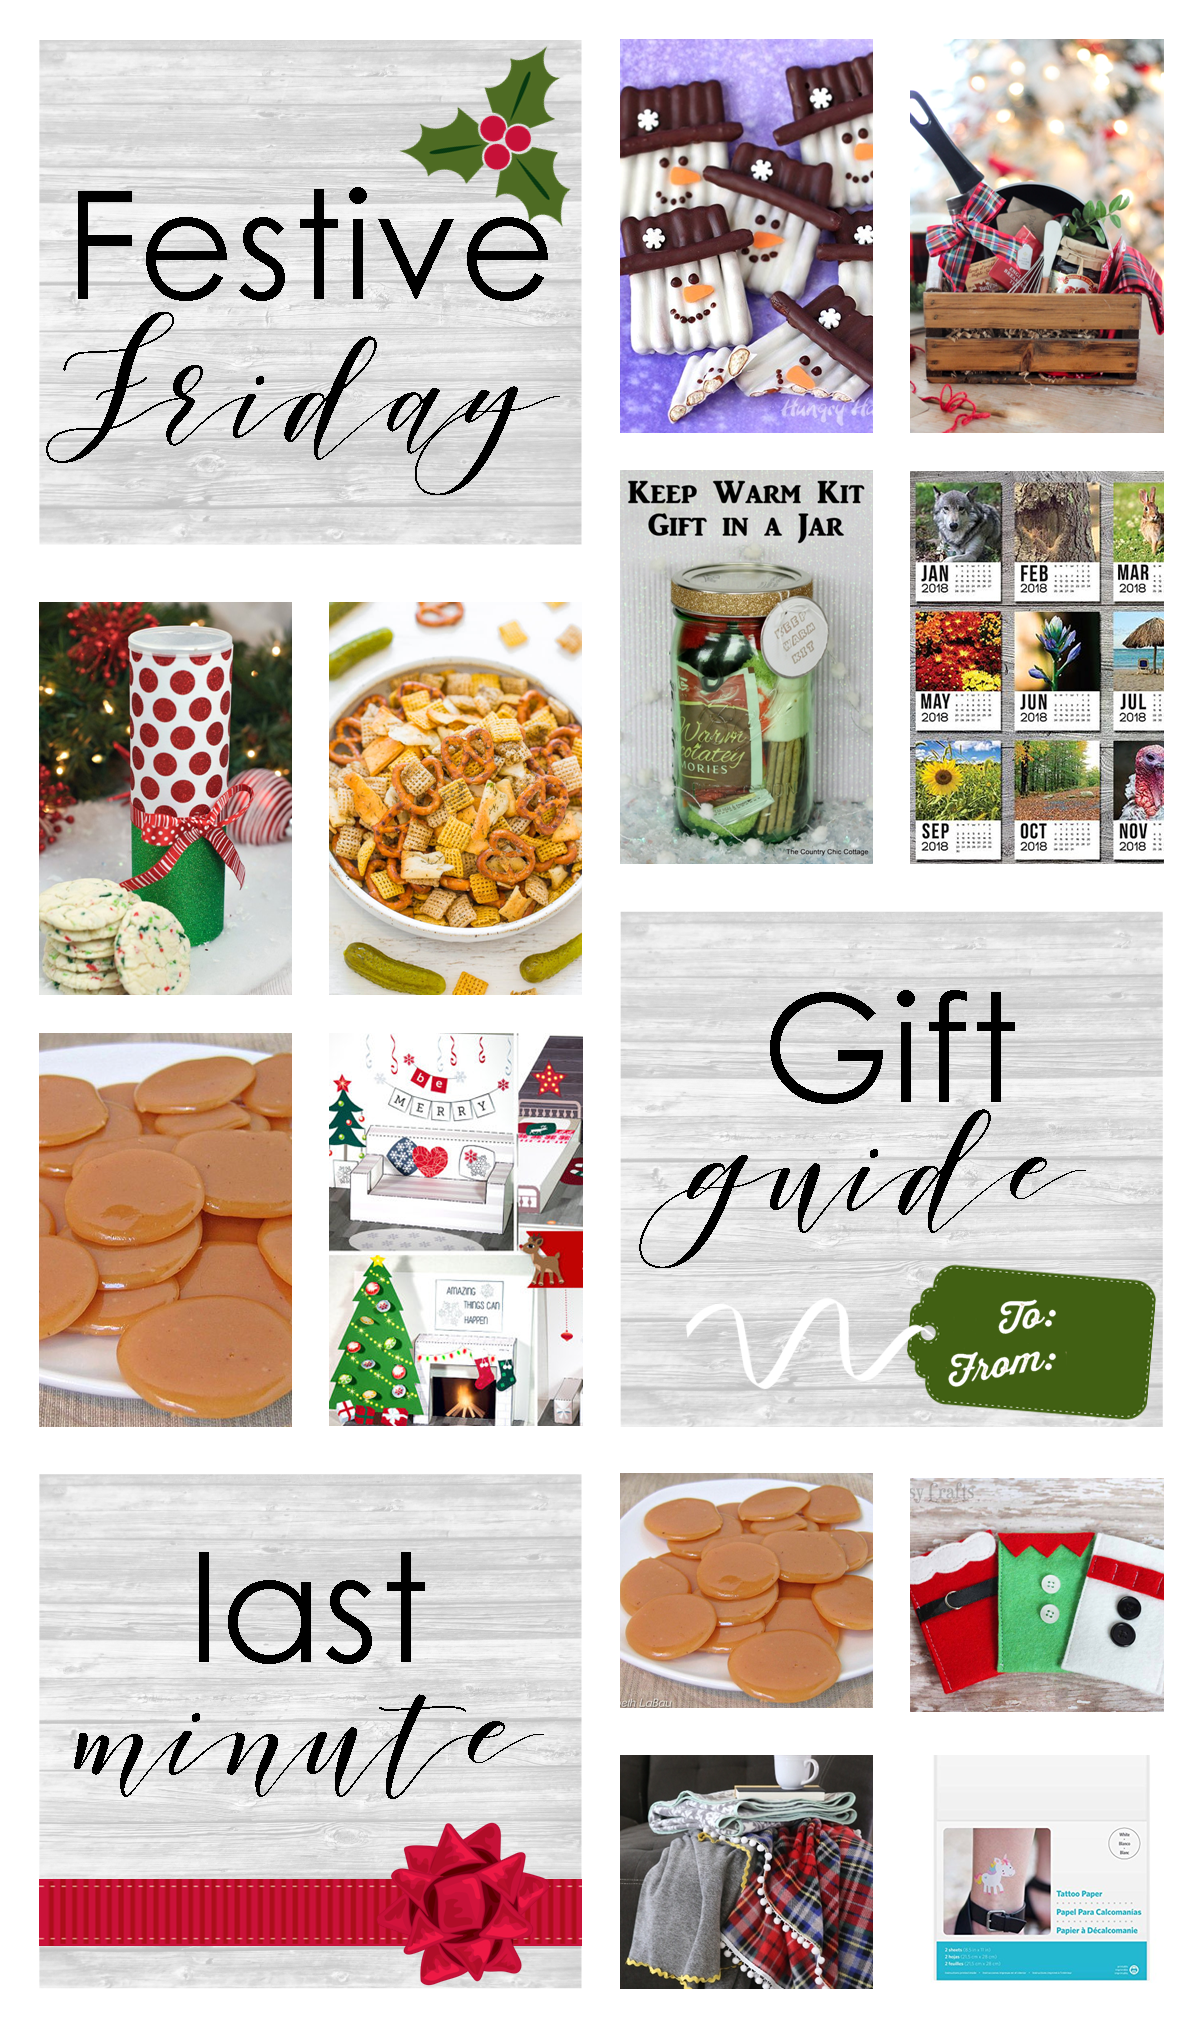 Festive Friday - Last Minute Gift Guide